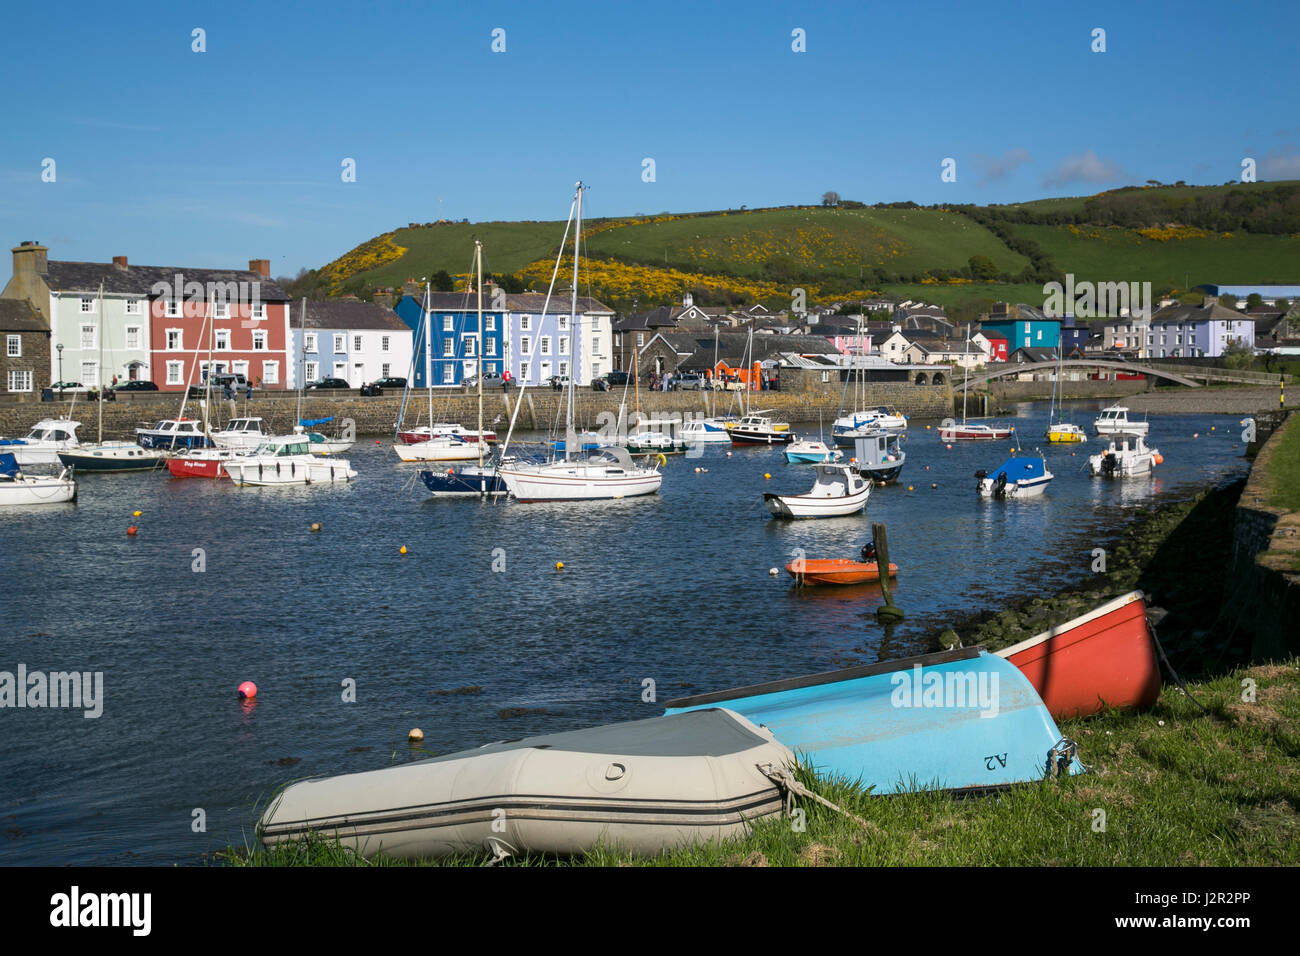 A charming Georgian port town Aberaeron, Ceredigion, West Wales with sailing boats and fishing boats in the harbour. - Stock Image